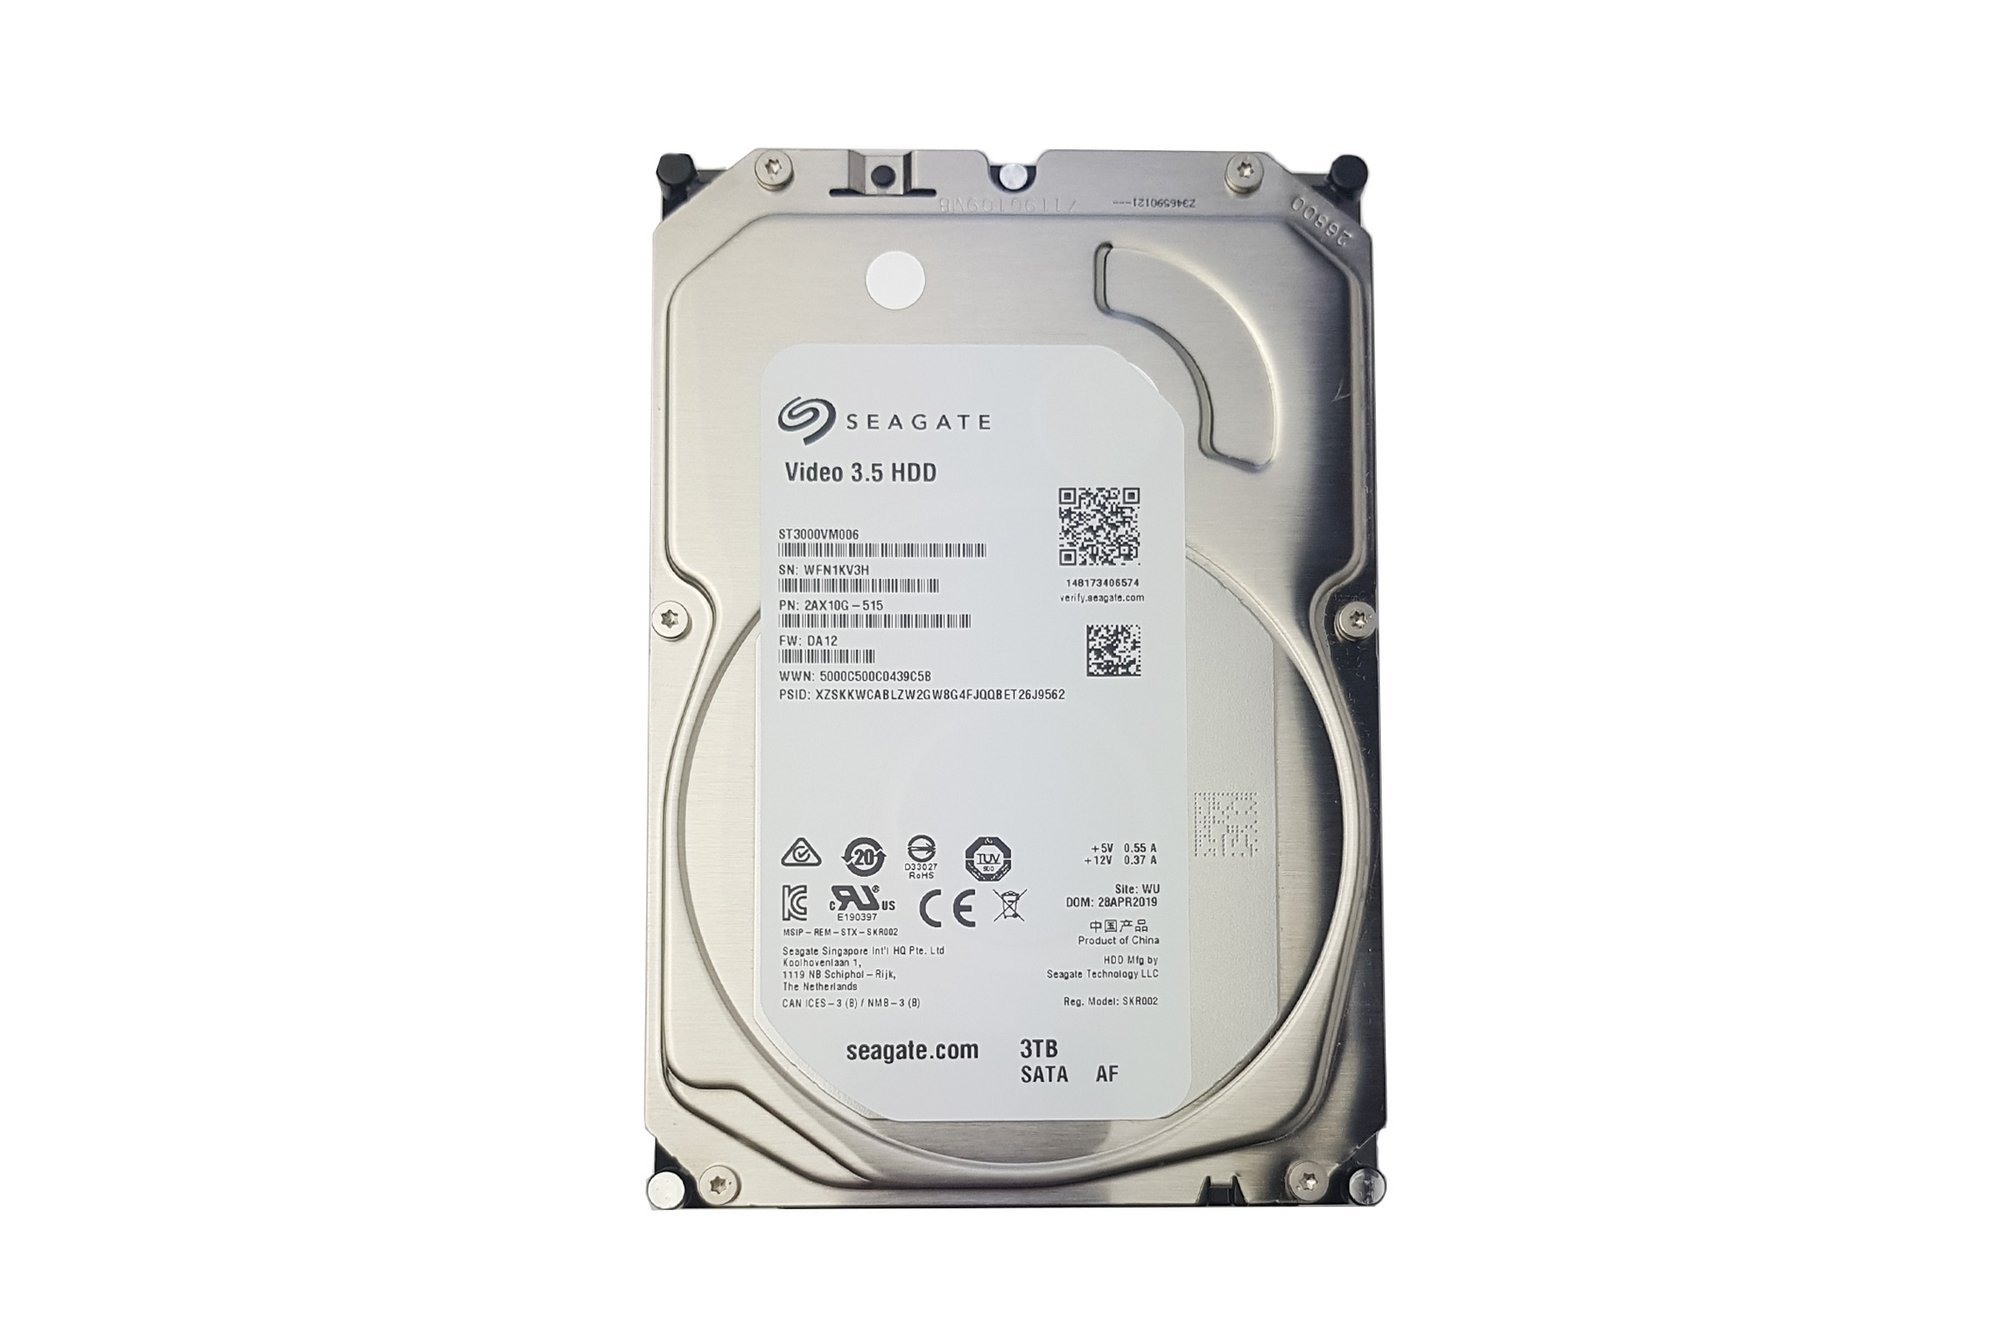 "Seagate Video 3.5 3TB ST3000VM006 Sata3 5.4K 64MB 3.5"" HDD DVR"